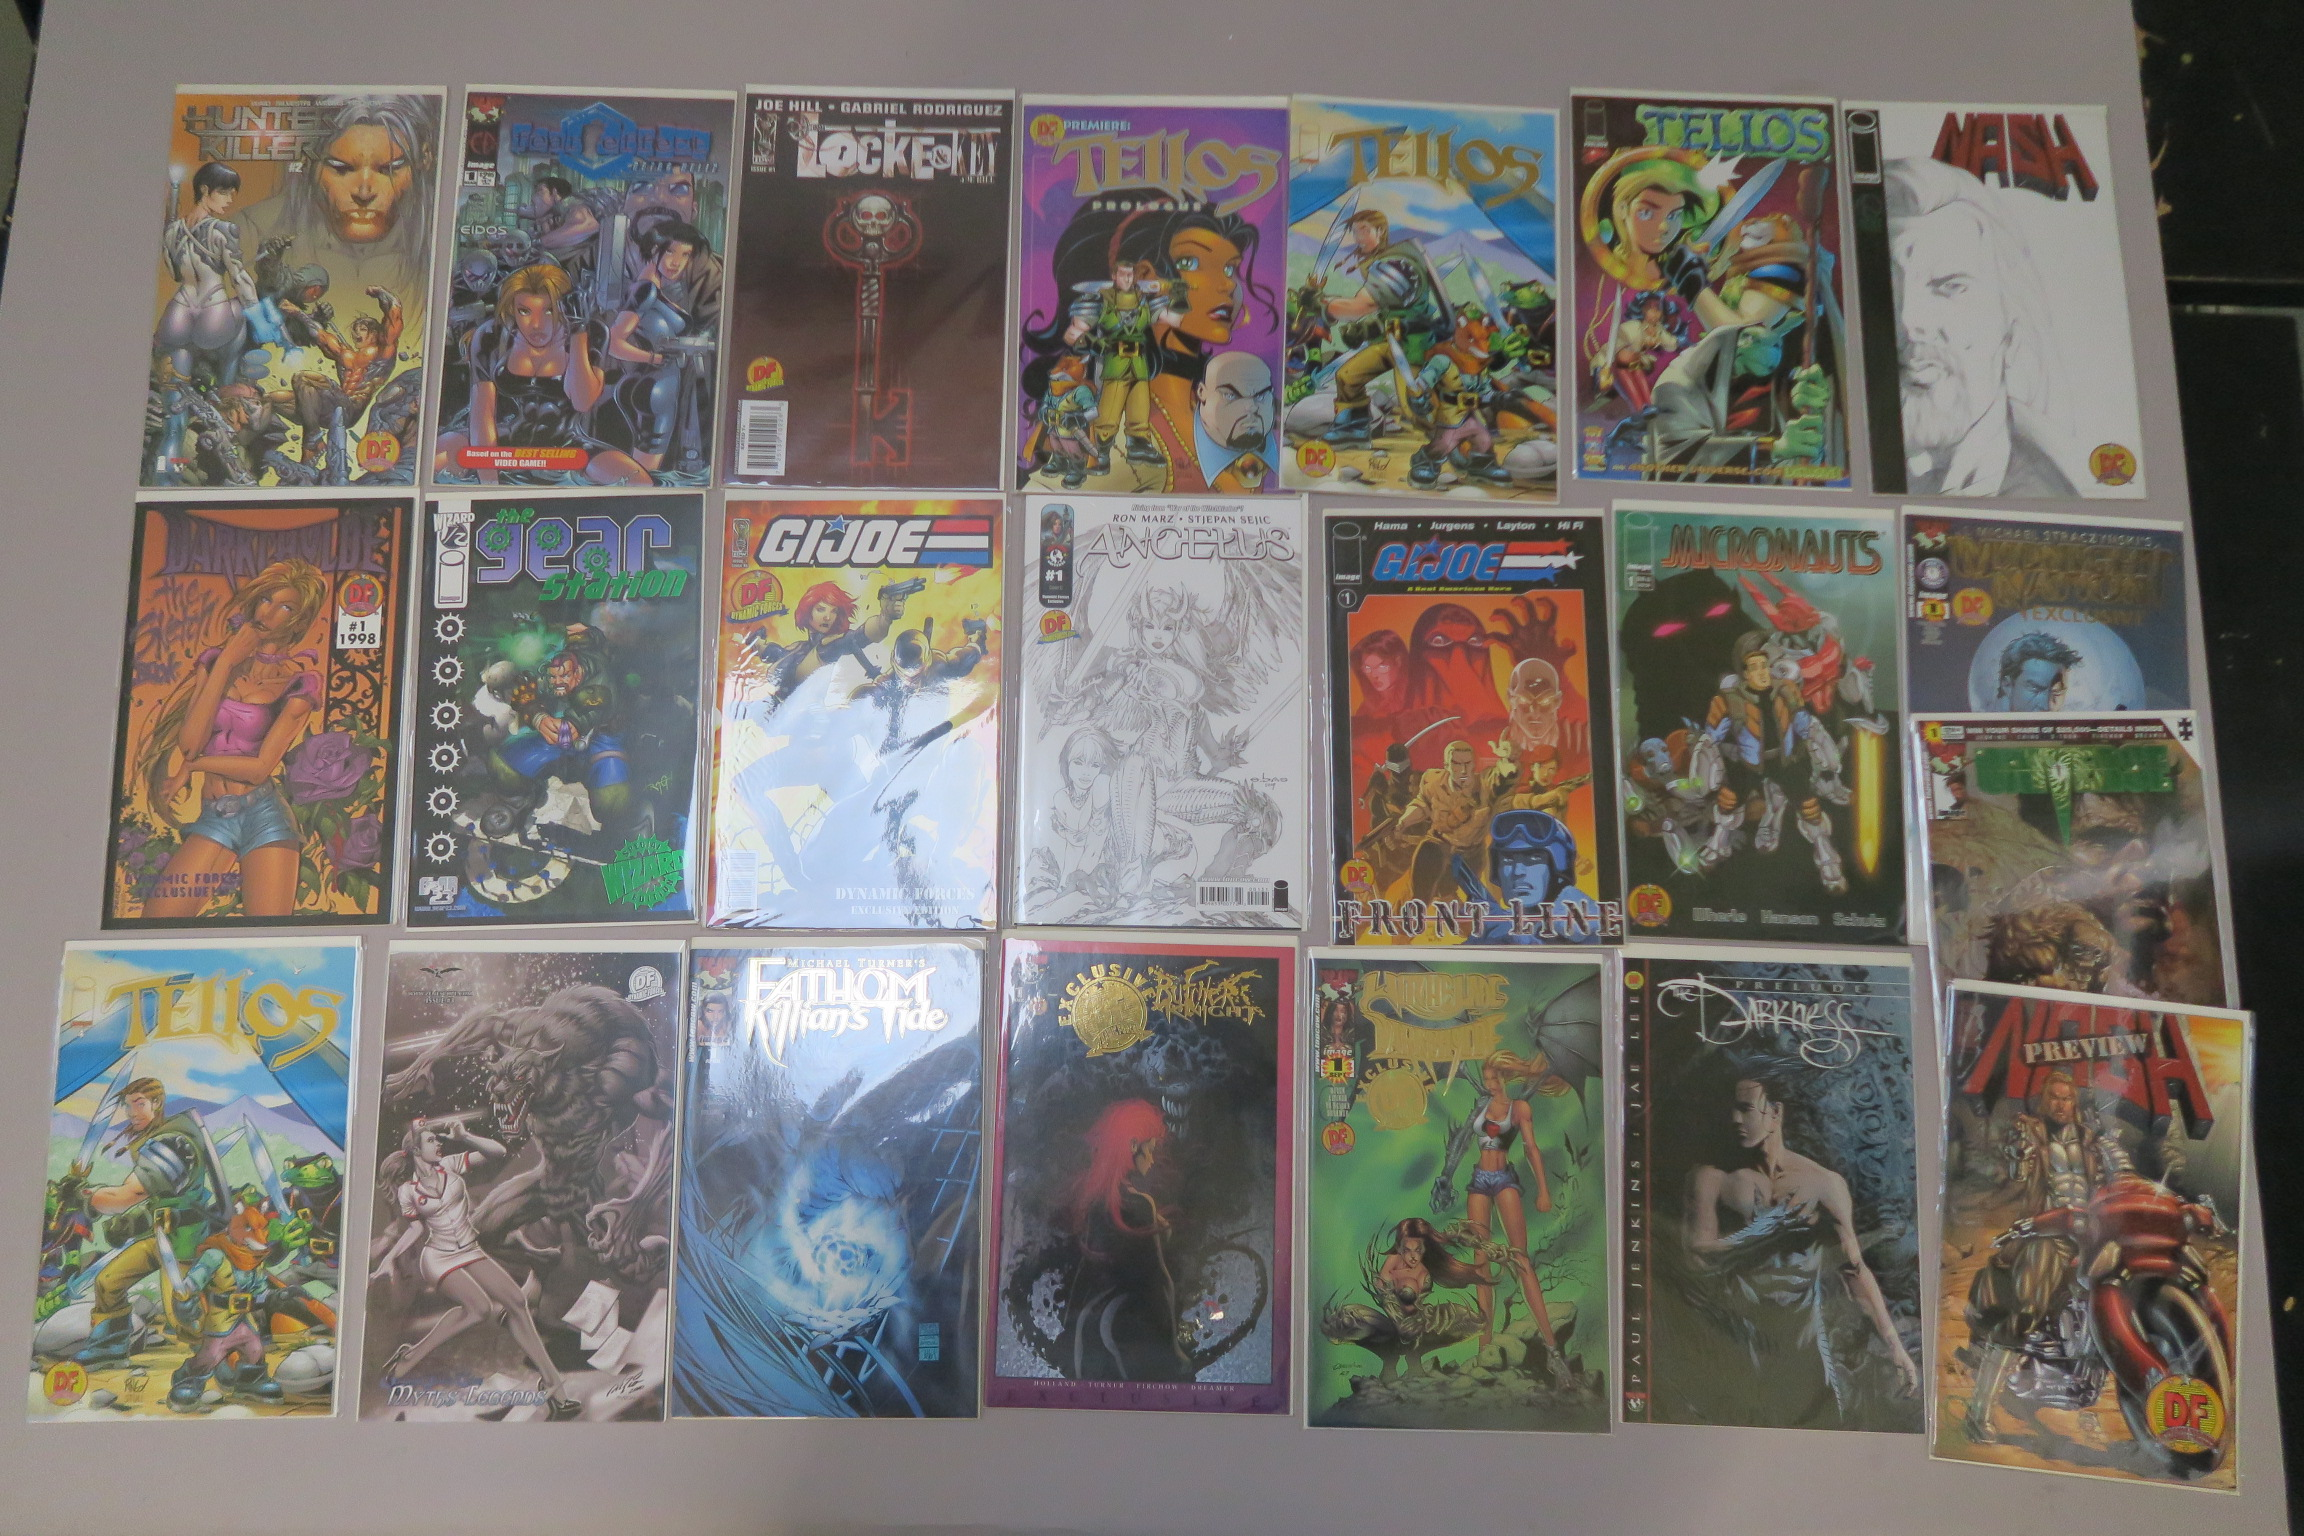 Lot 6 - Collection of 22 limited edition exclusive comics including Witchblade Darkchylde, Micronauts, G. I.